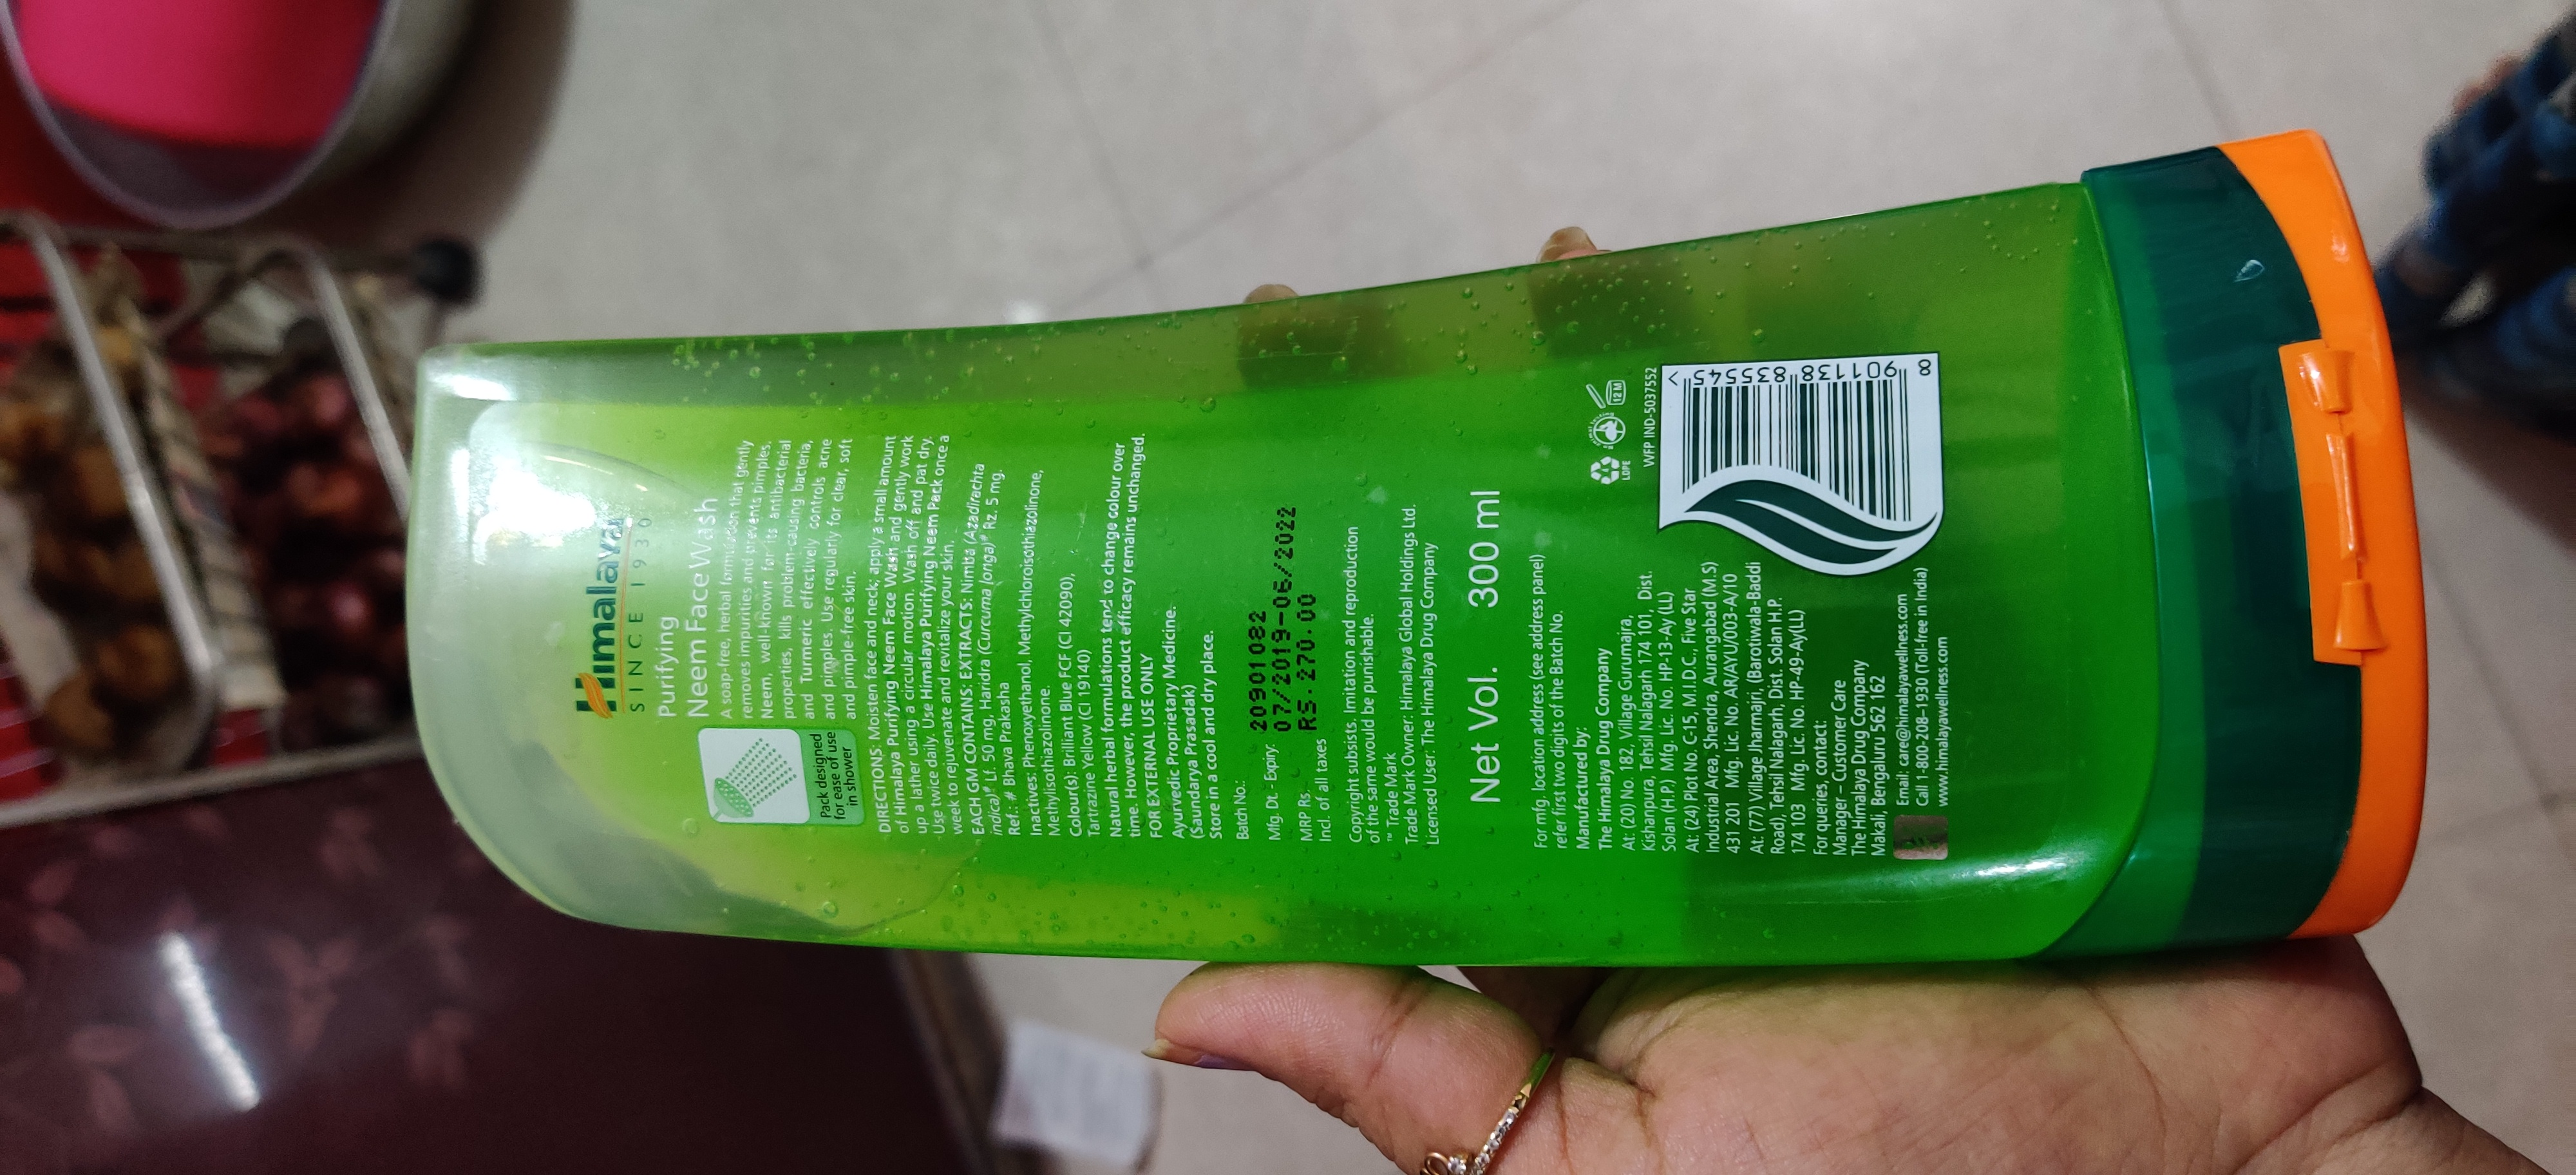 Himalaya Herbals Purifying Neem Foaming Face Wash-Good but not great.-By jigna.cuppycake-2